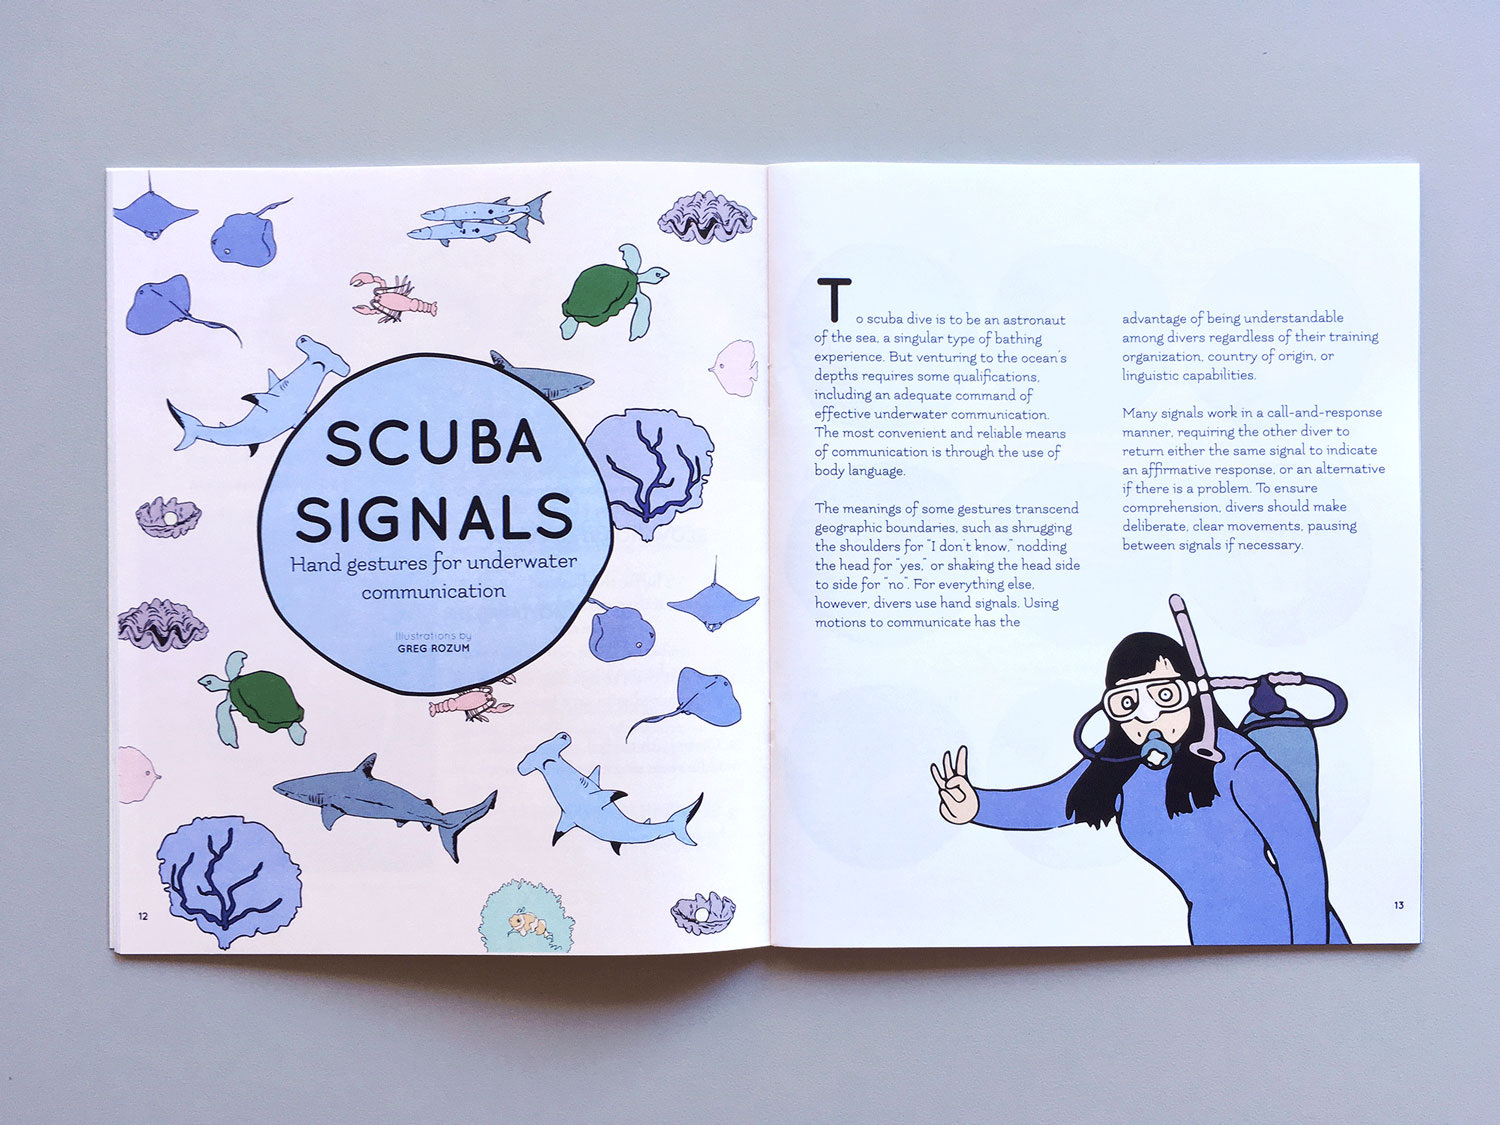 Interior spread of a section called SCUBA SIGNALS: hand gestures for underwater communication. Featured on both pages are illustrations of sea creatures and a scuba diver making the OK hand signal